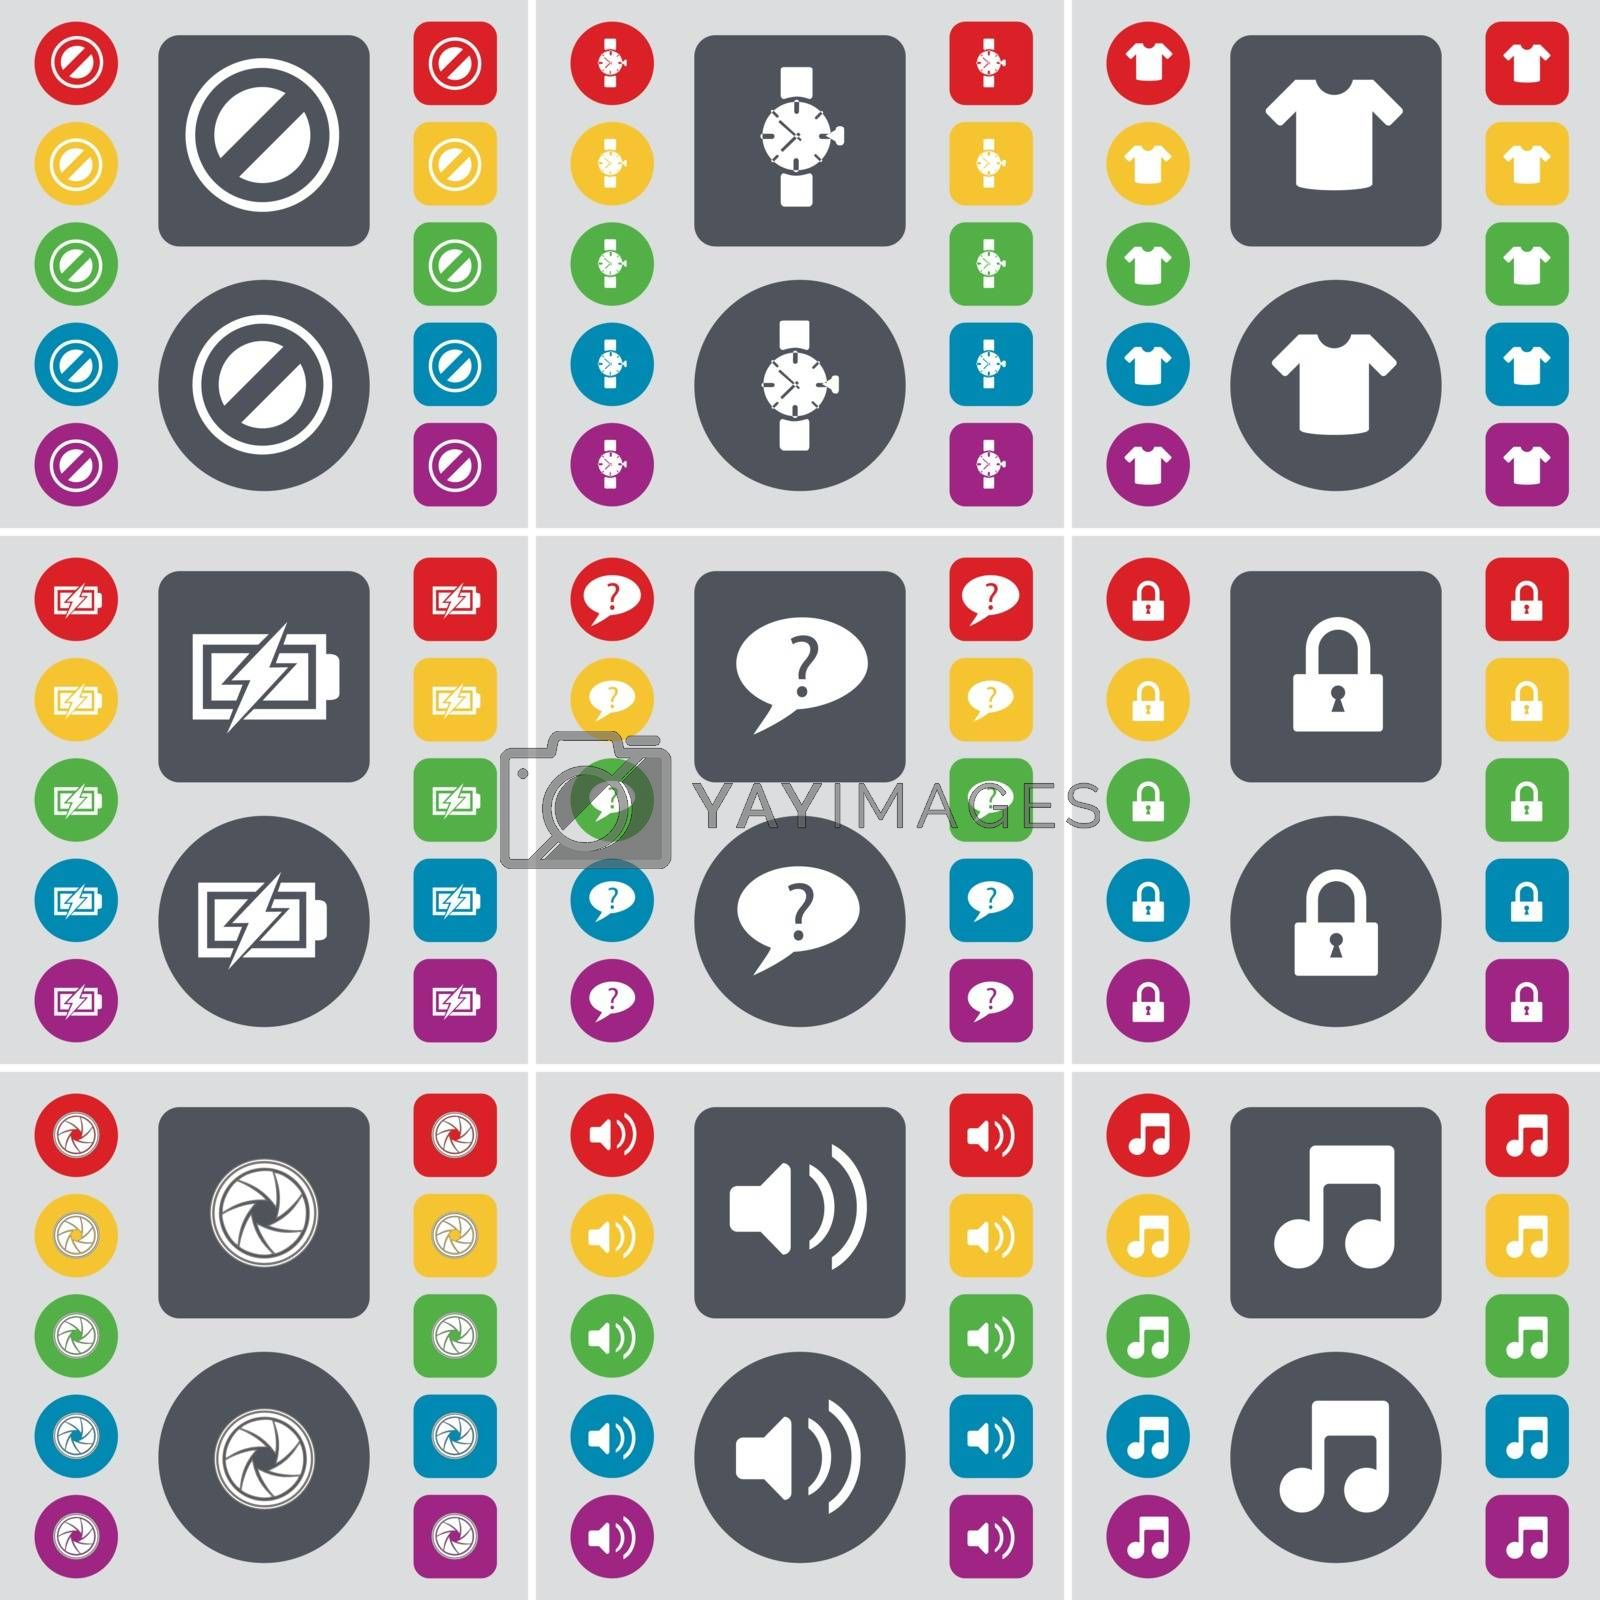 Royalty free image of Stop, Wrist watch, T-Shirt, Charging, Chat bubble, Lock, Lens, Sound, Note icon symbol. A large set of flat, colored buttons for your design. Vector by serhii_lohvyniuk